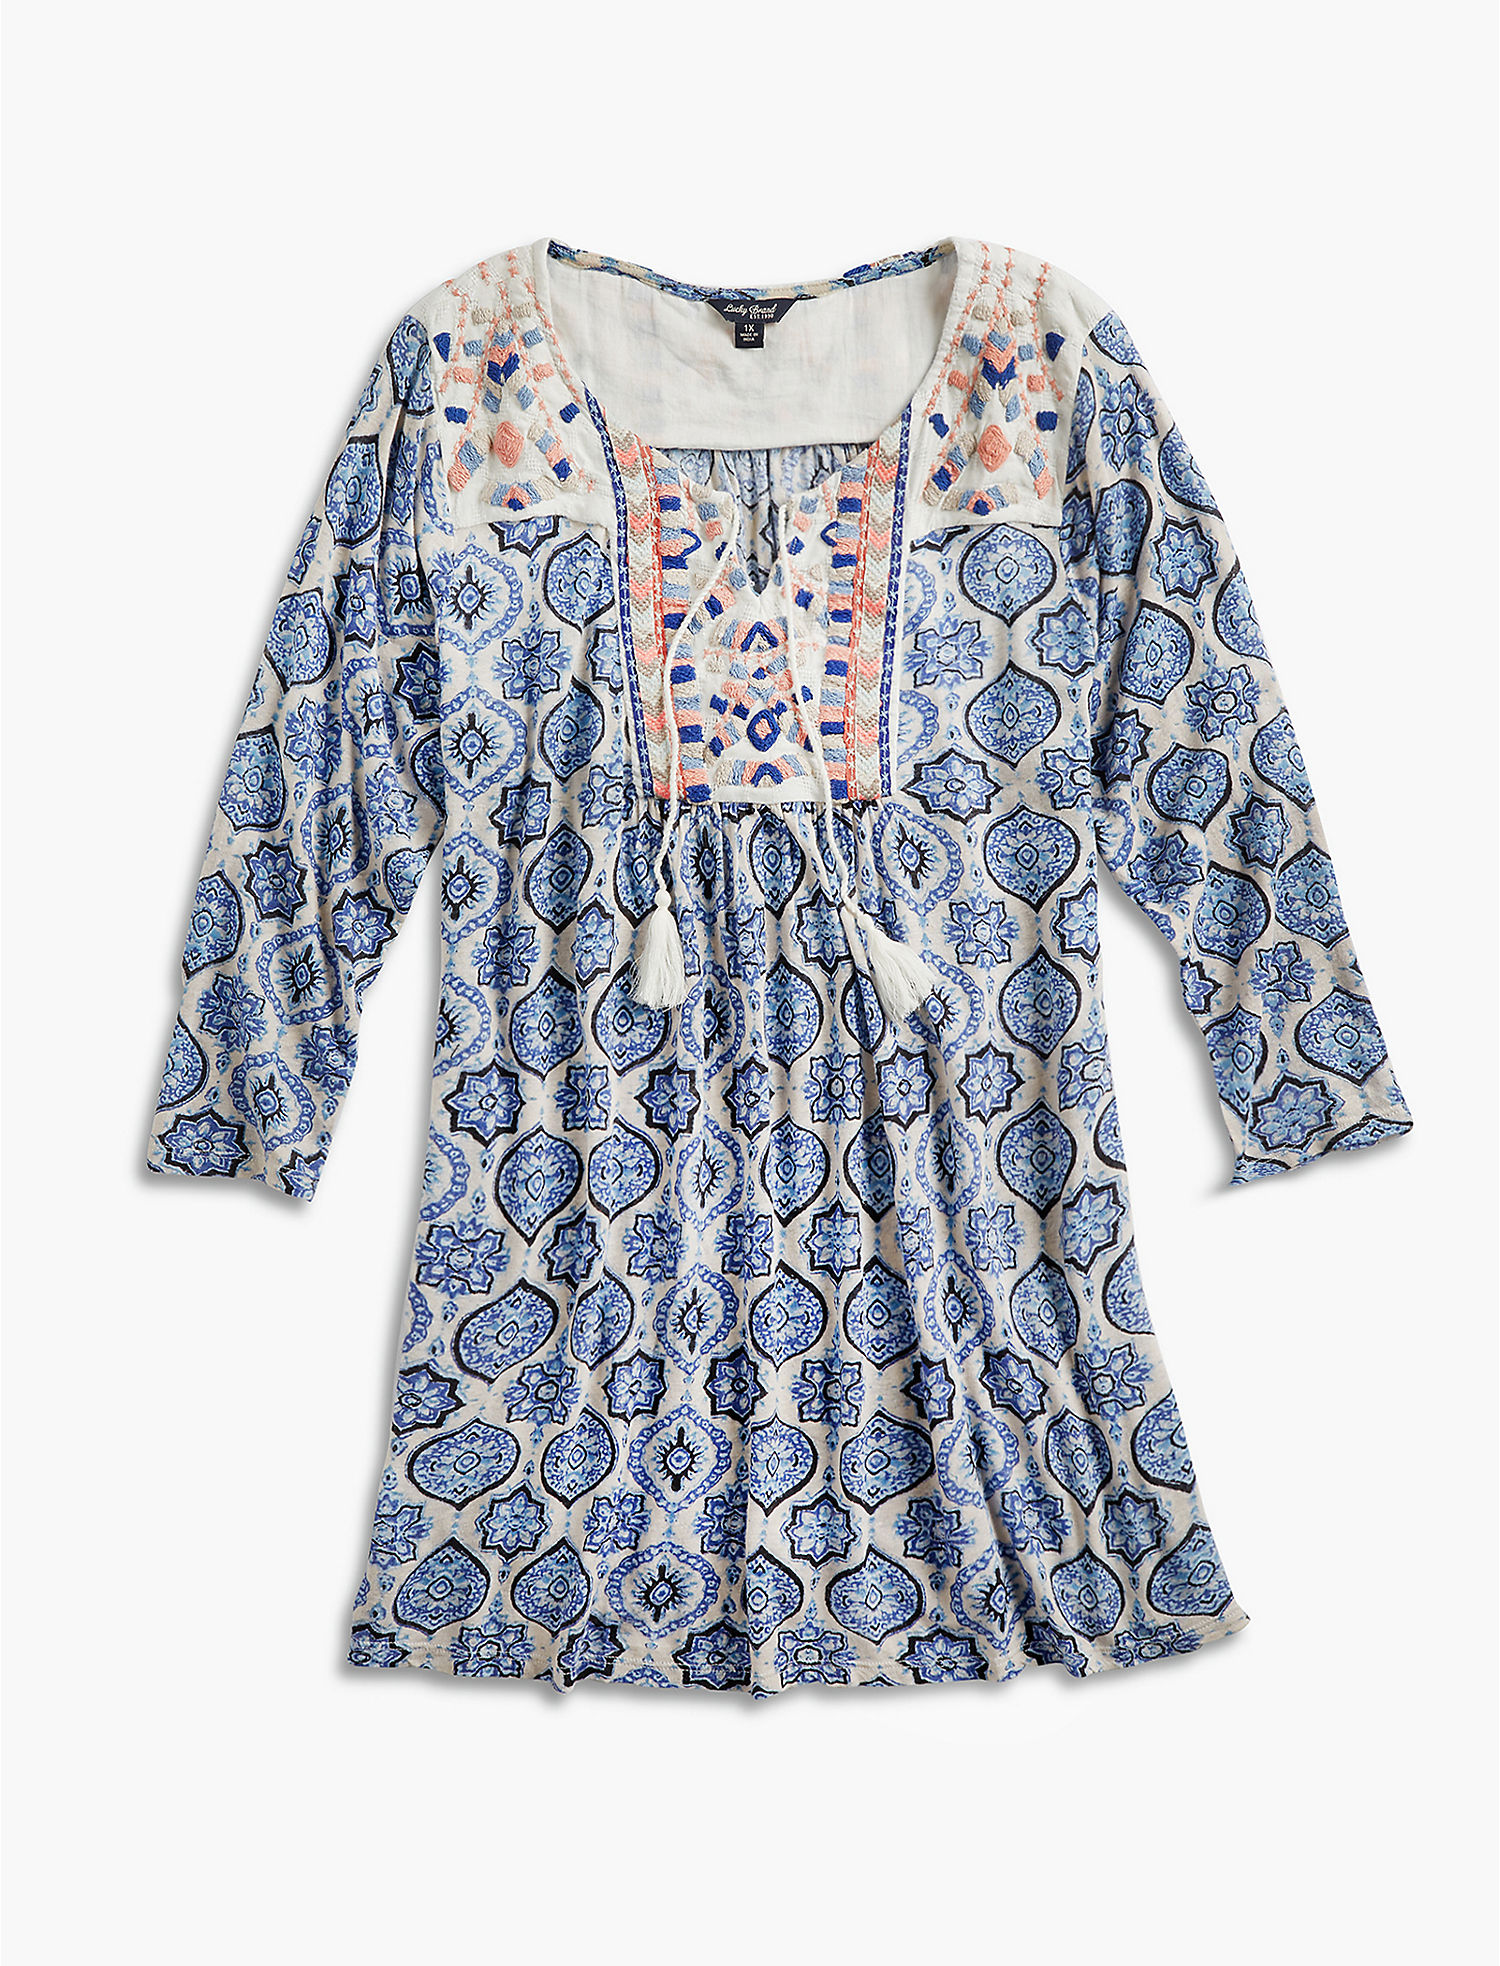 Looking For Online Block Print Top Lucky Brand Pictures Sale Factory Outlet 9PxKrtANl